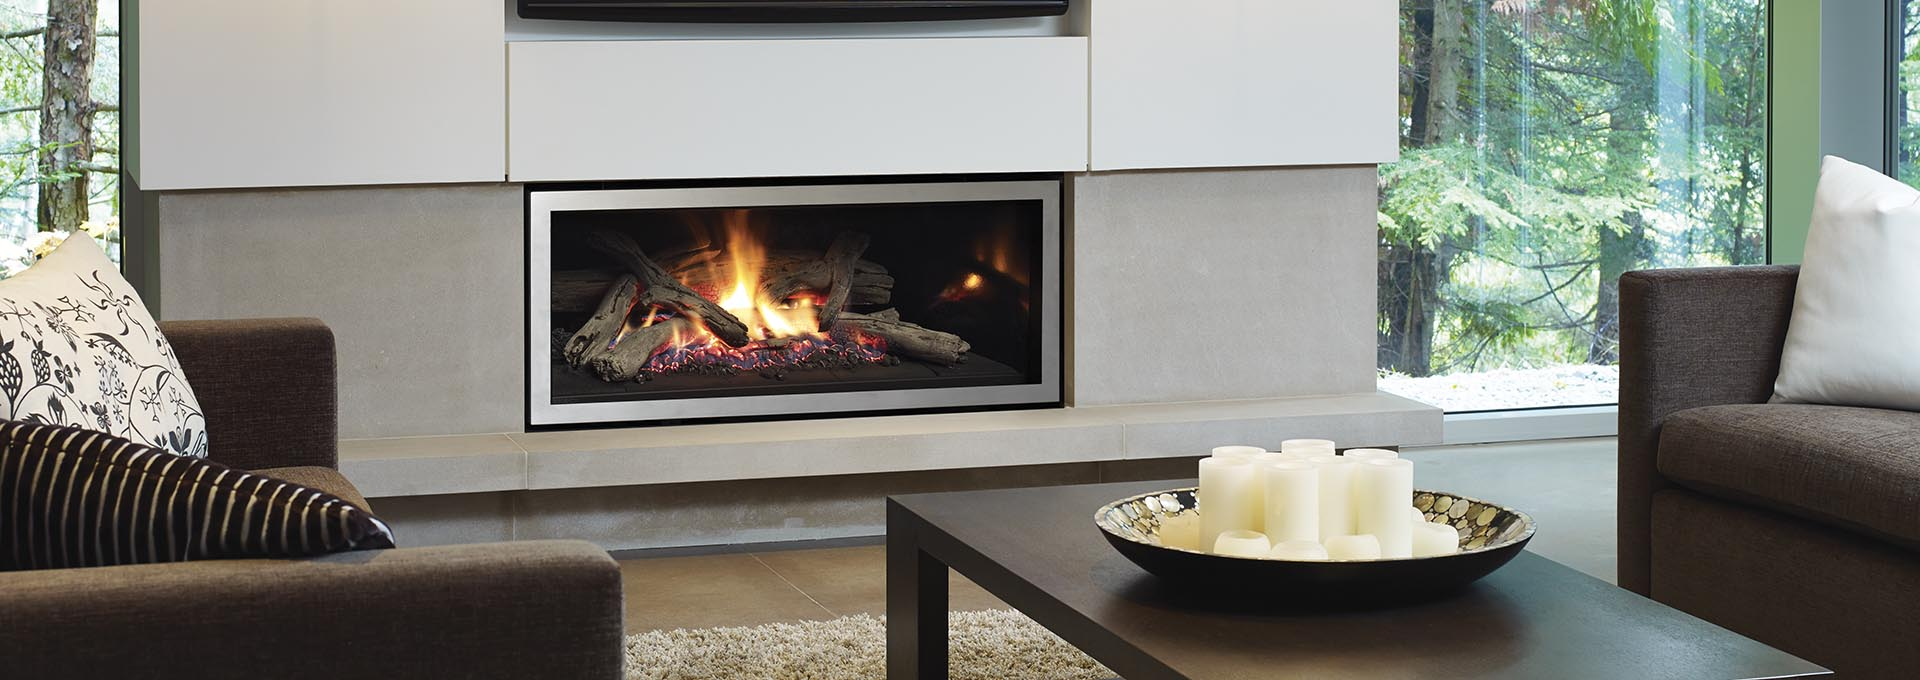 Top tips to get the most out of your fire this winter - Put out fire in fireplace ...